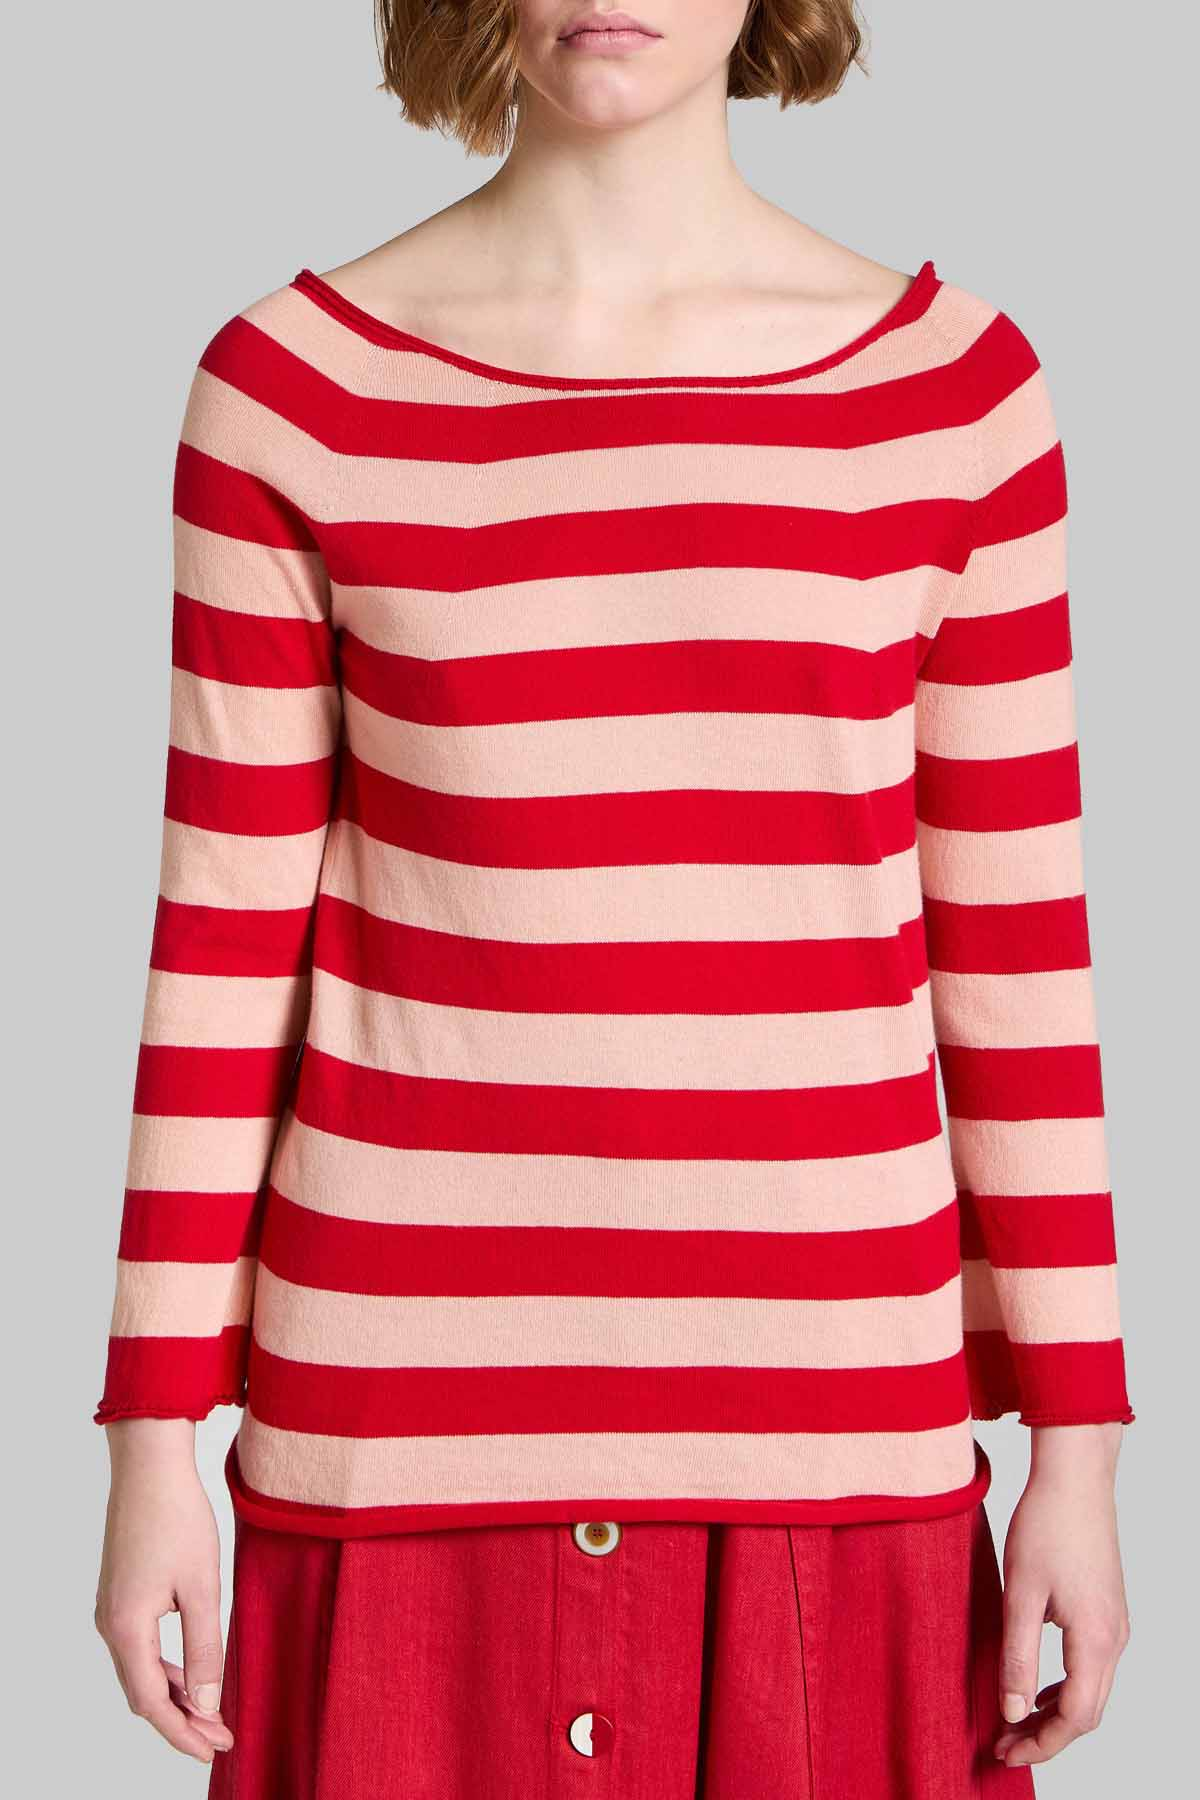 Women's Clothing Sweater Cardigan Bio Cotton with Red and Fuxia Stripes Maliparmi | Knitwear | JN35707050032B30